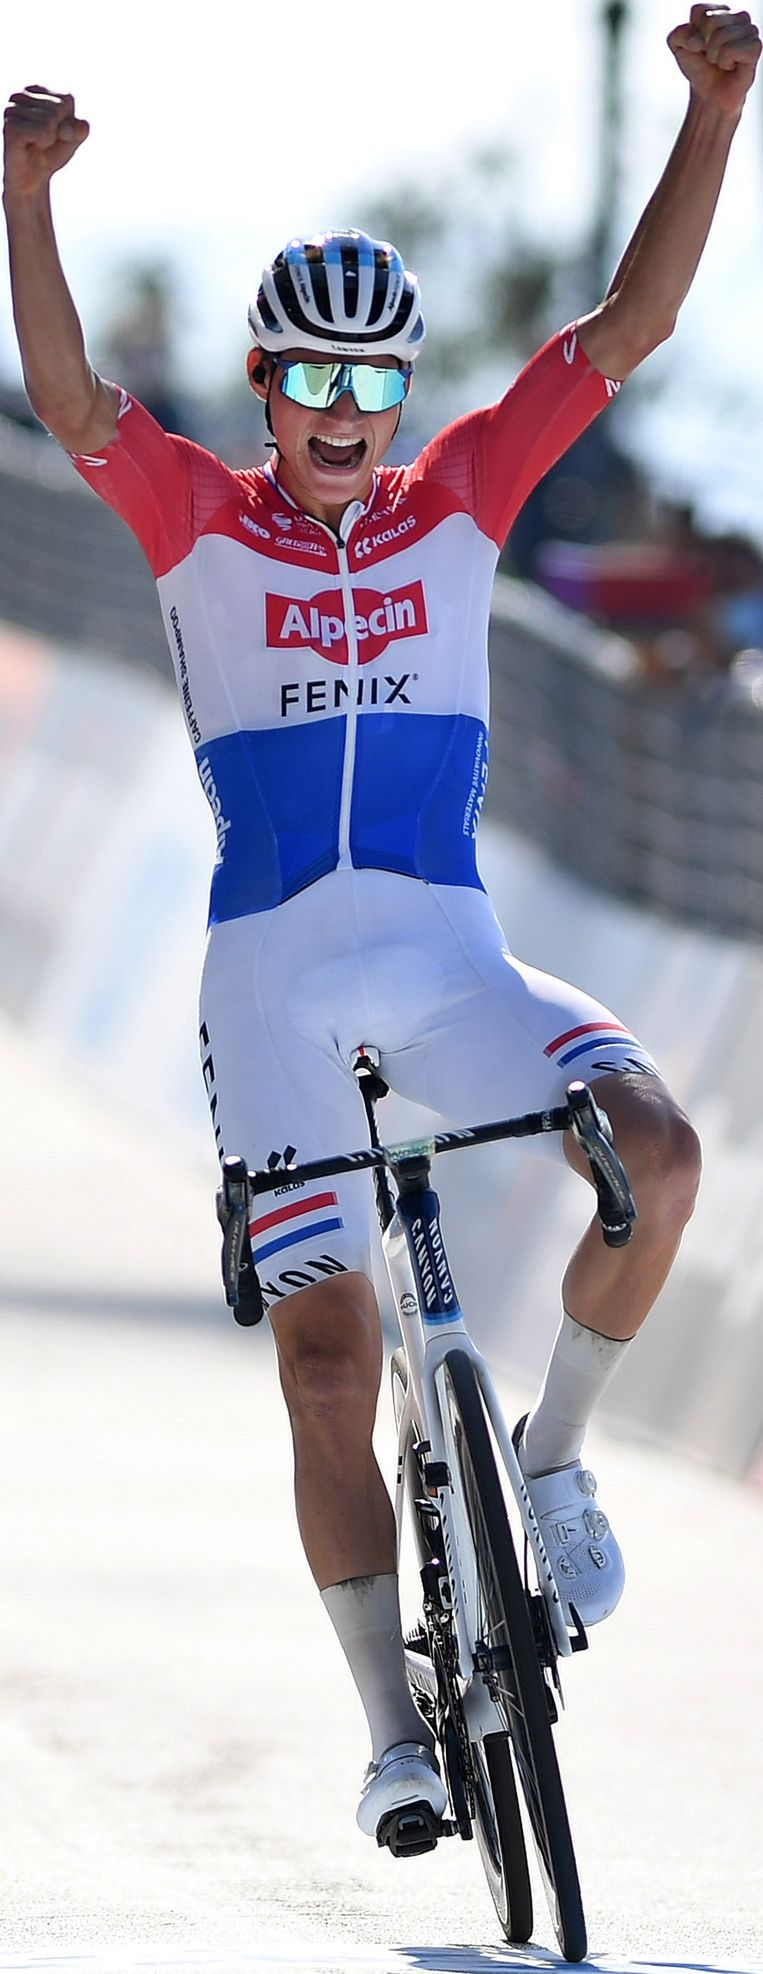 Mathieu Van Der Poel wint in september een etappe in de Tirreno-Adriatico. Beeld Getty Images